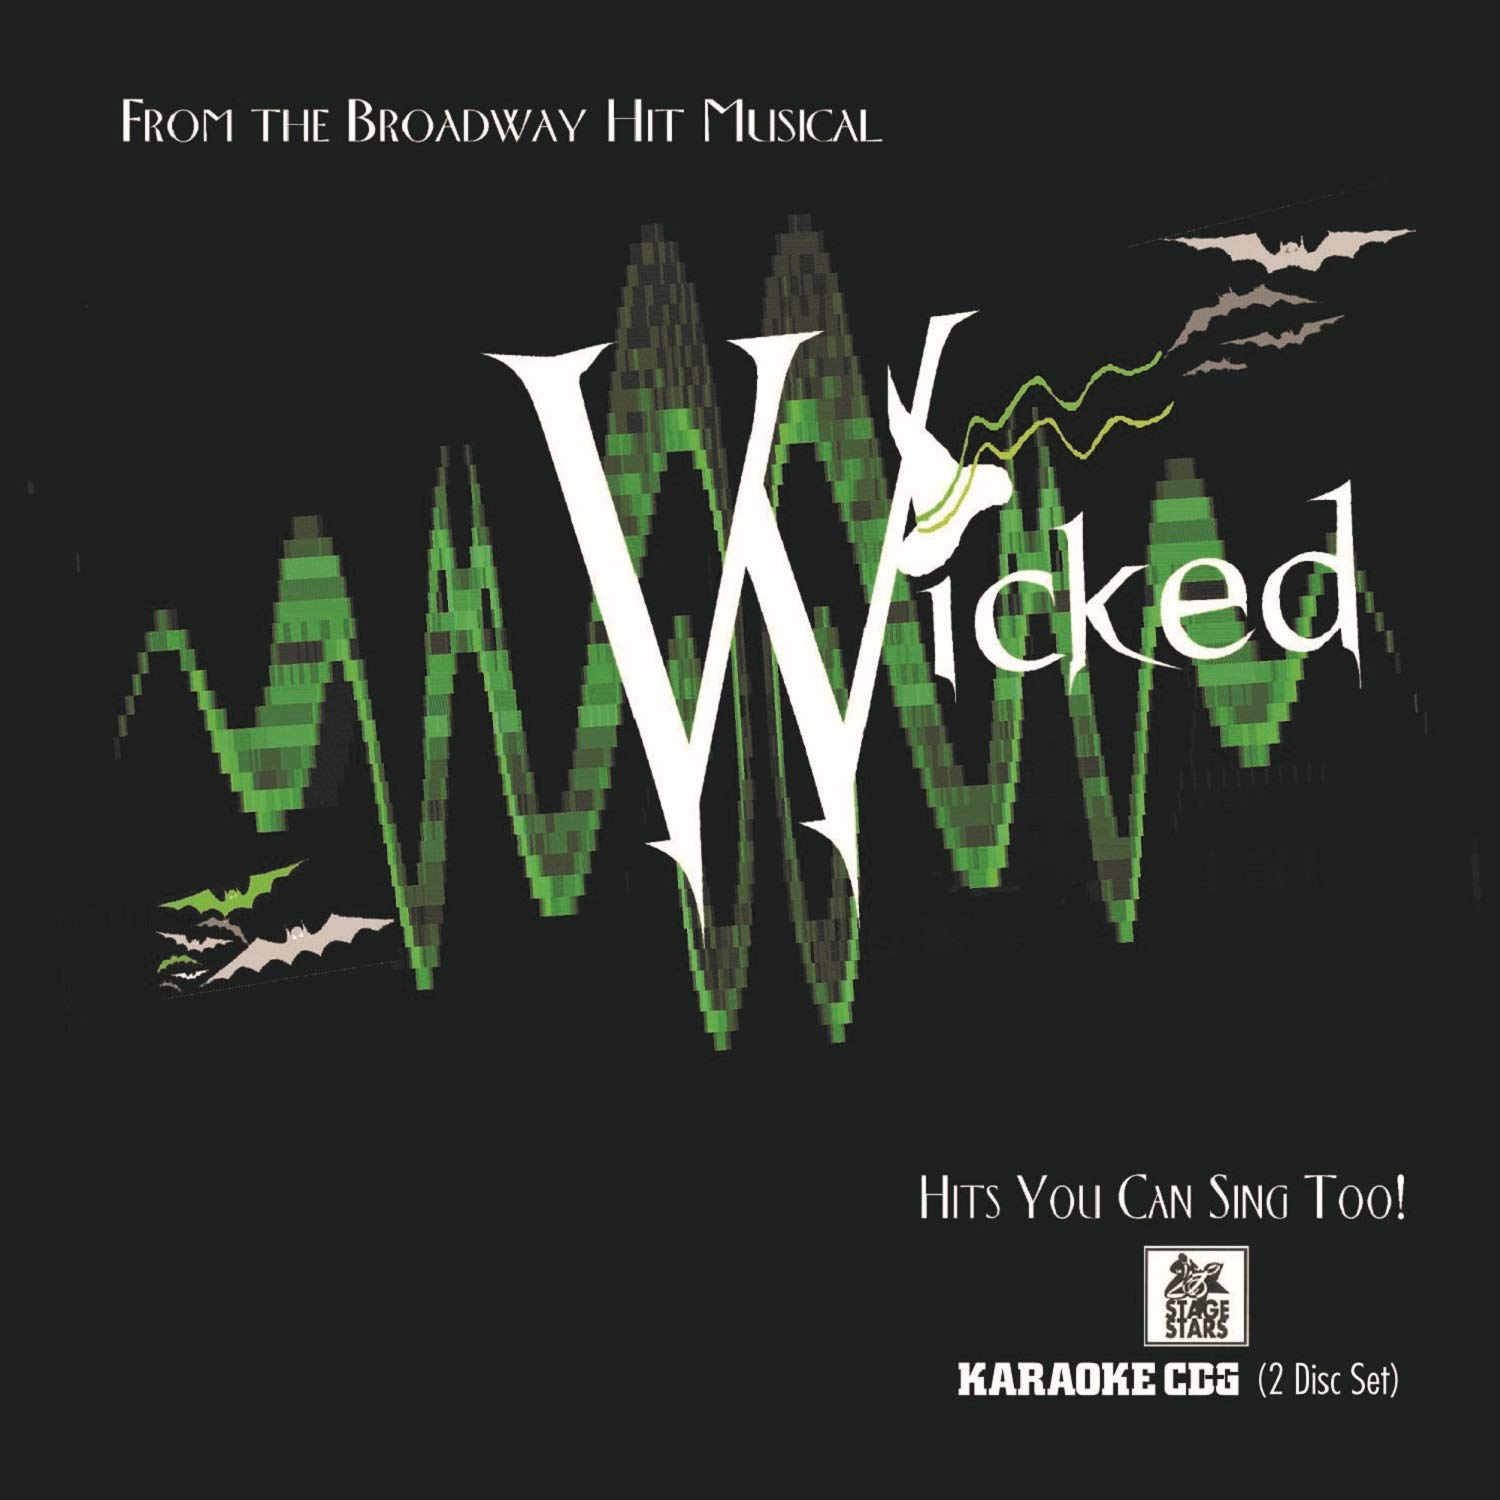 Wicked: From the Hit Broadway Musical - Hits You Can Sing Too! by Stage Stars Records